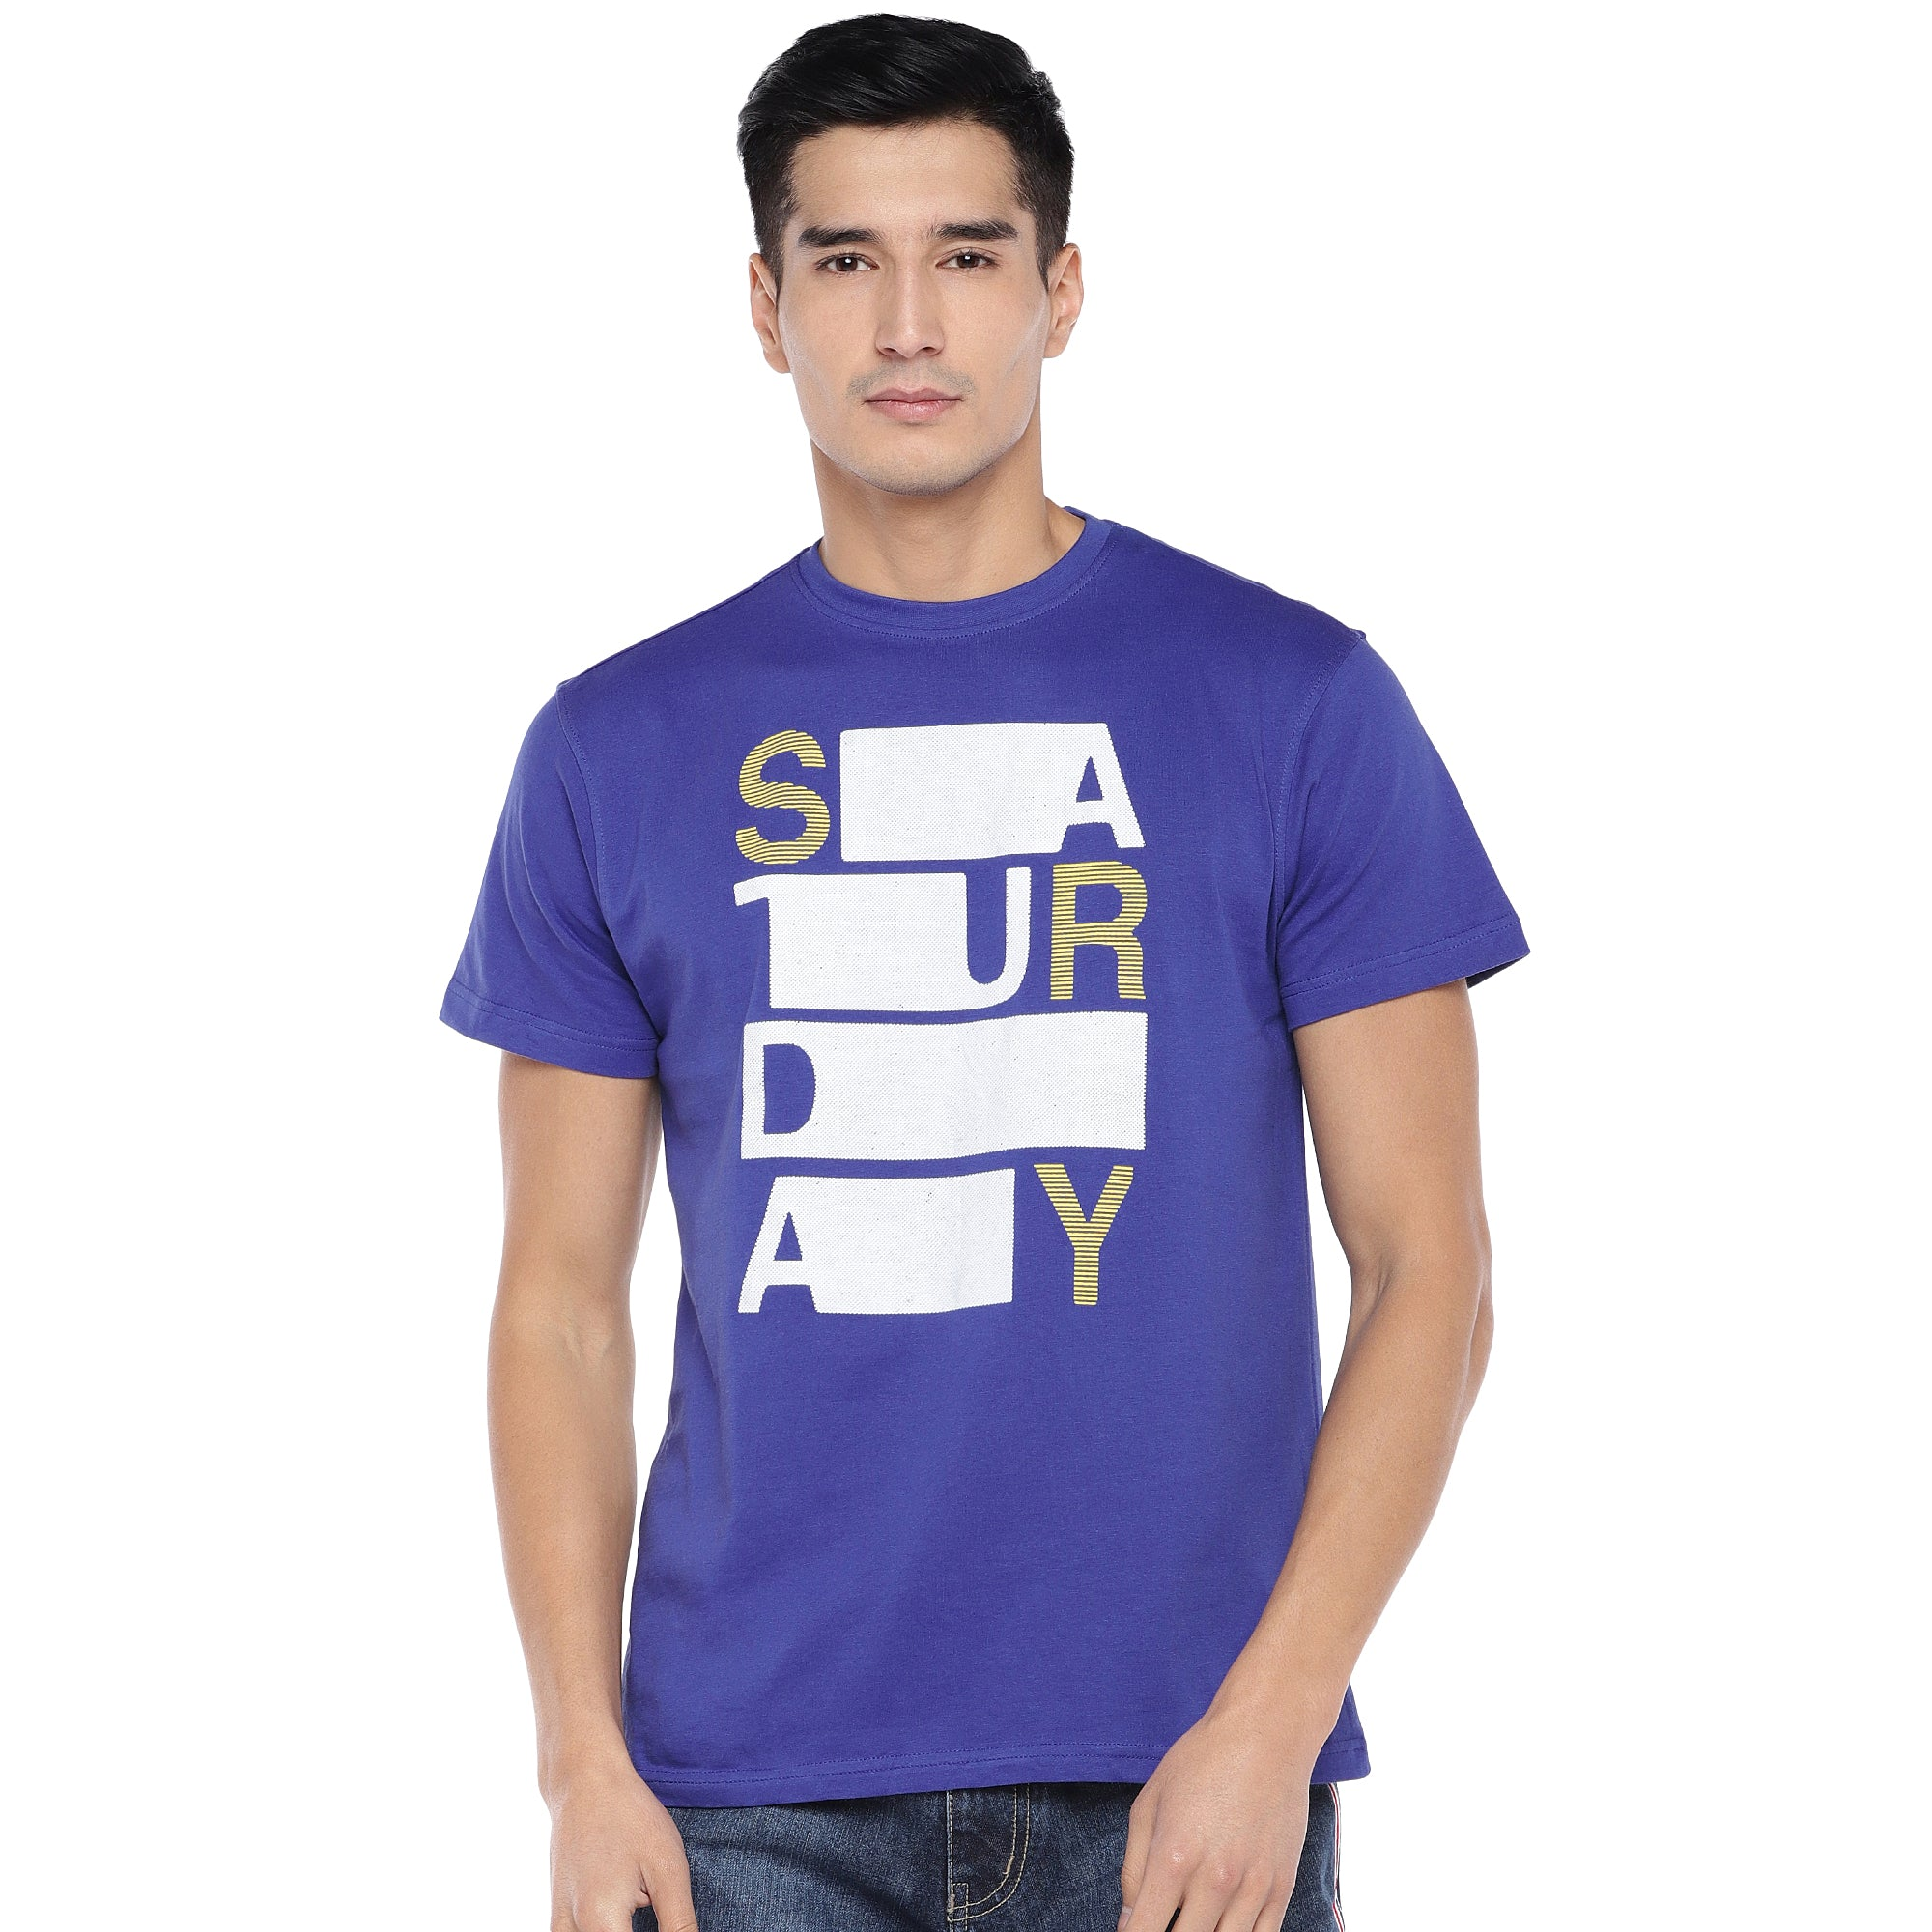 Blue Printed T-Shirt-1